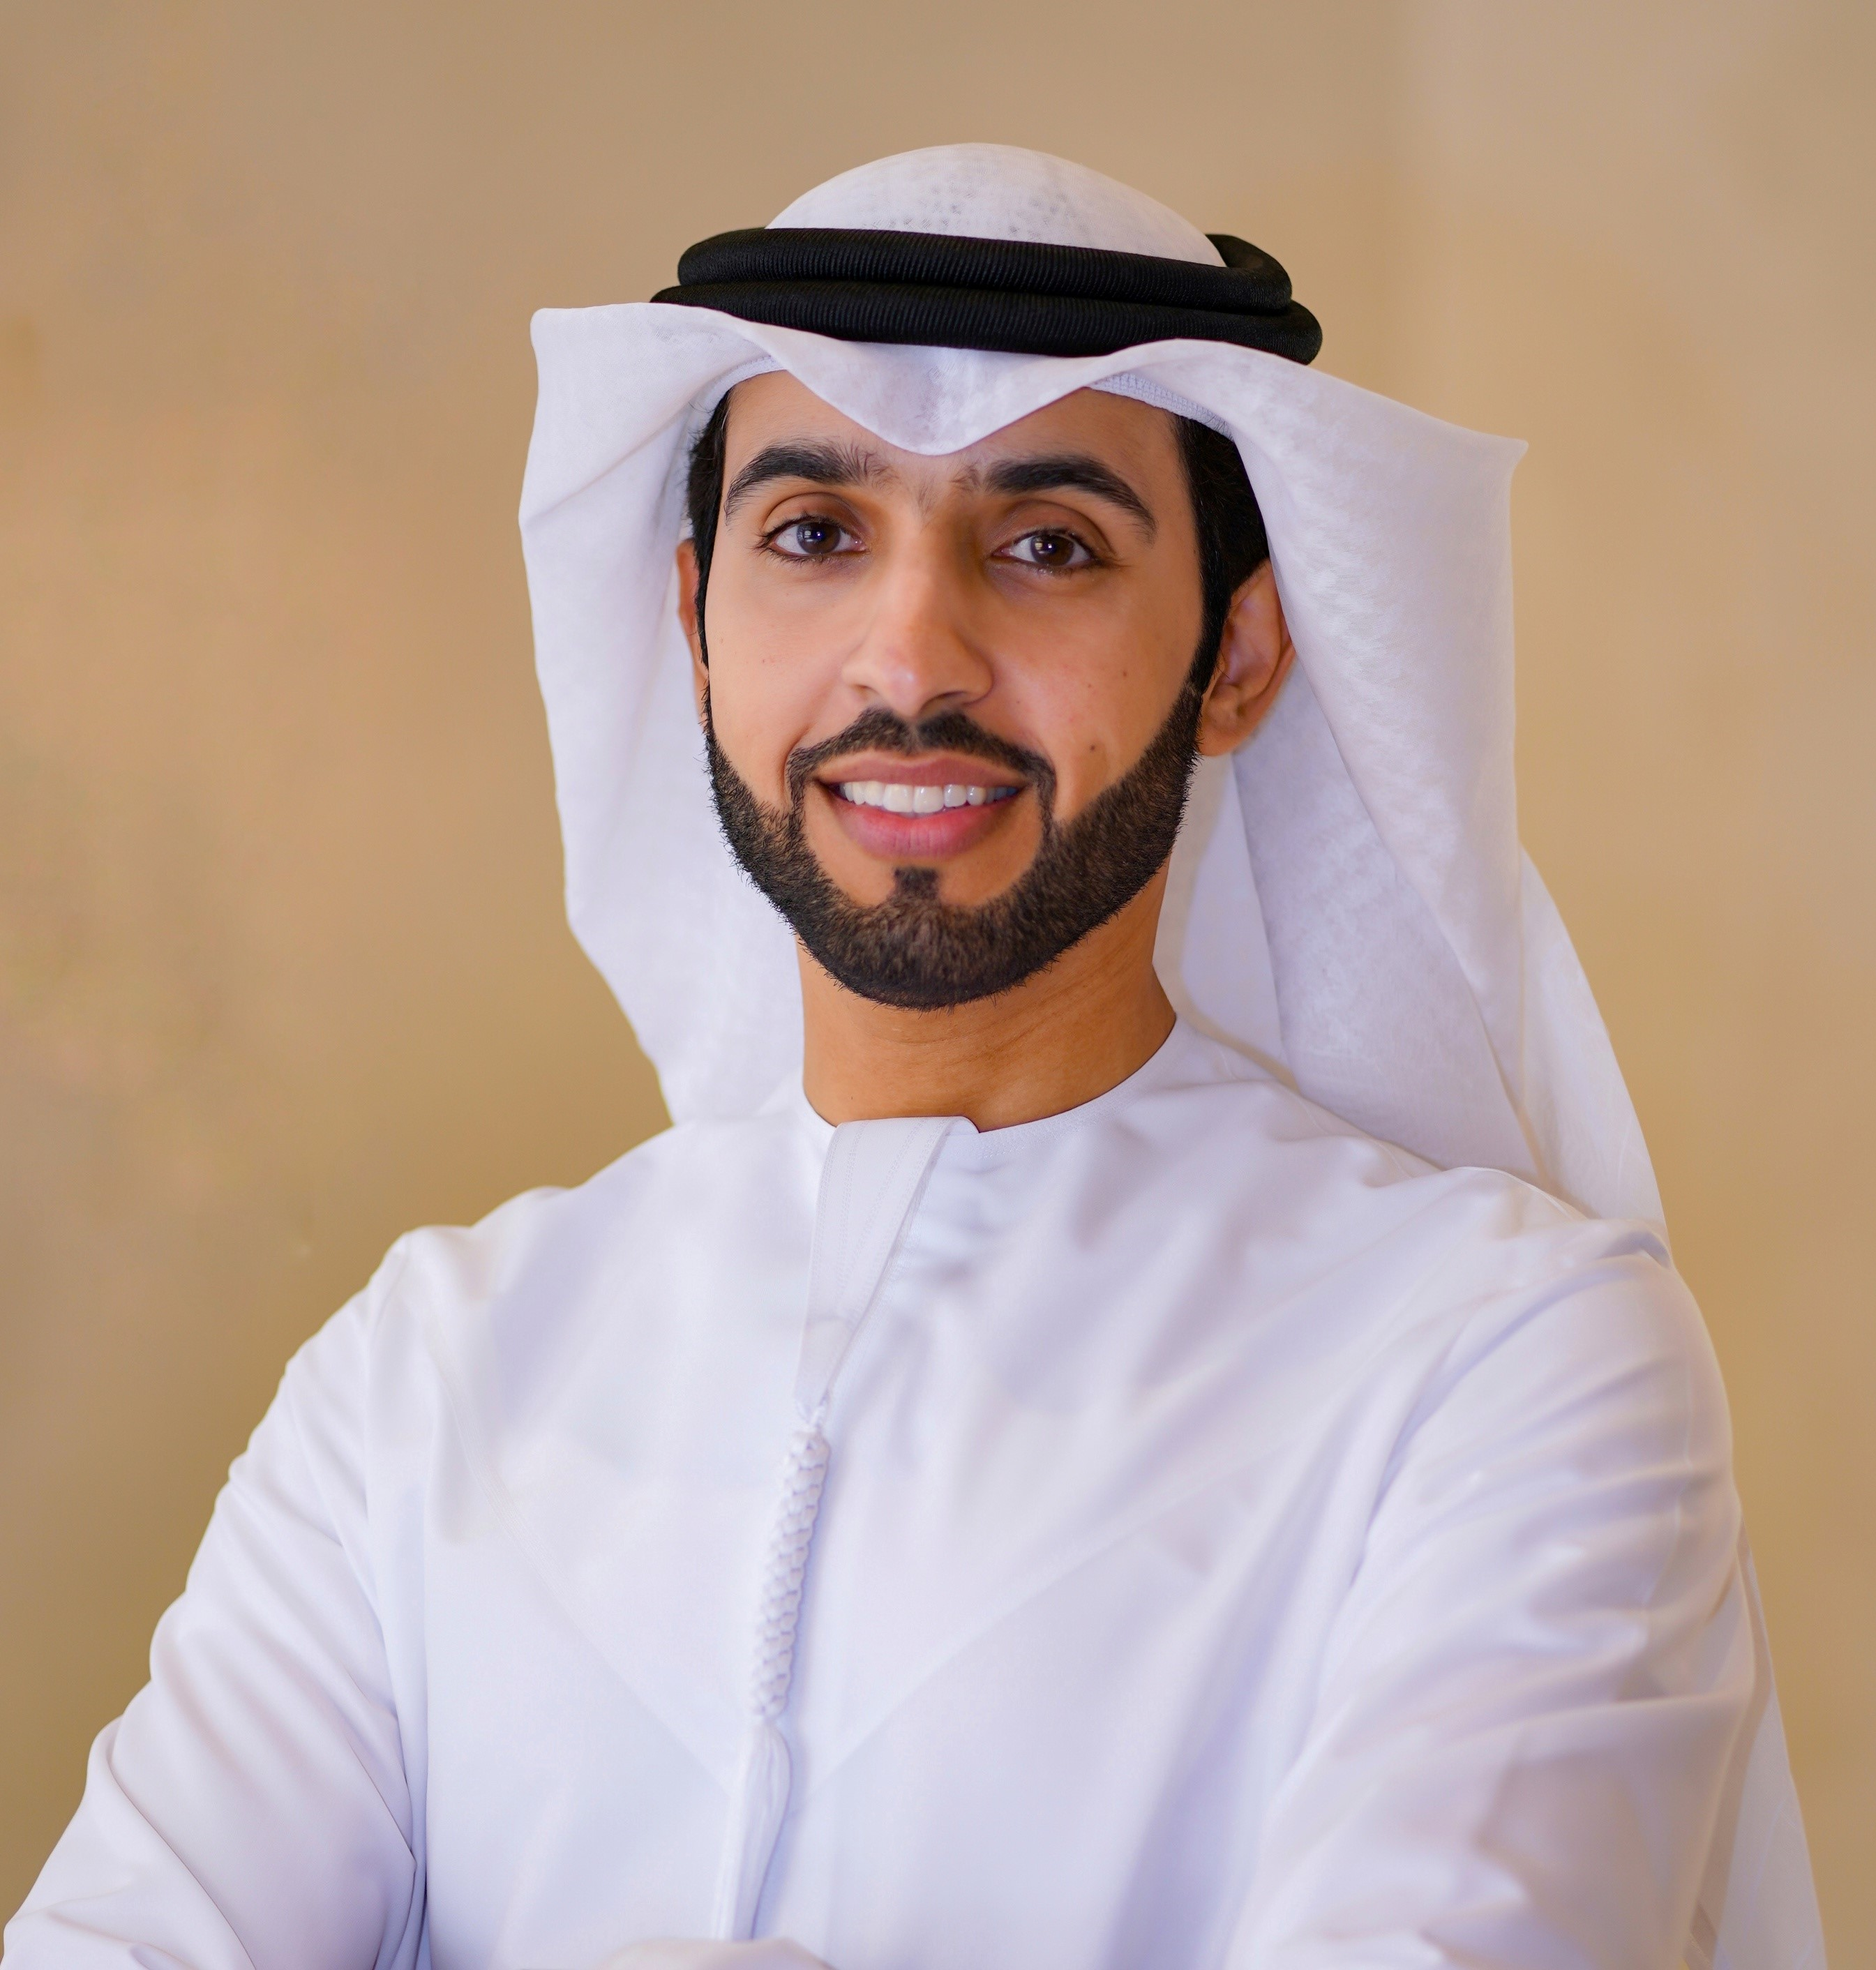 JAFZA signs agreement with Emaar Malls Group